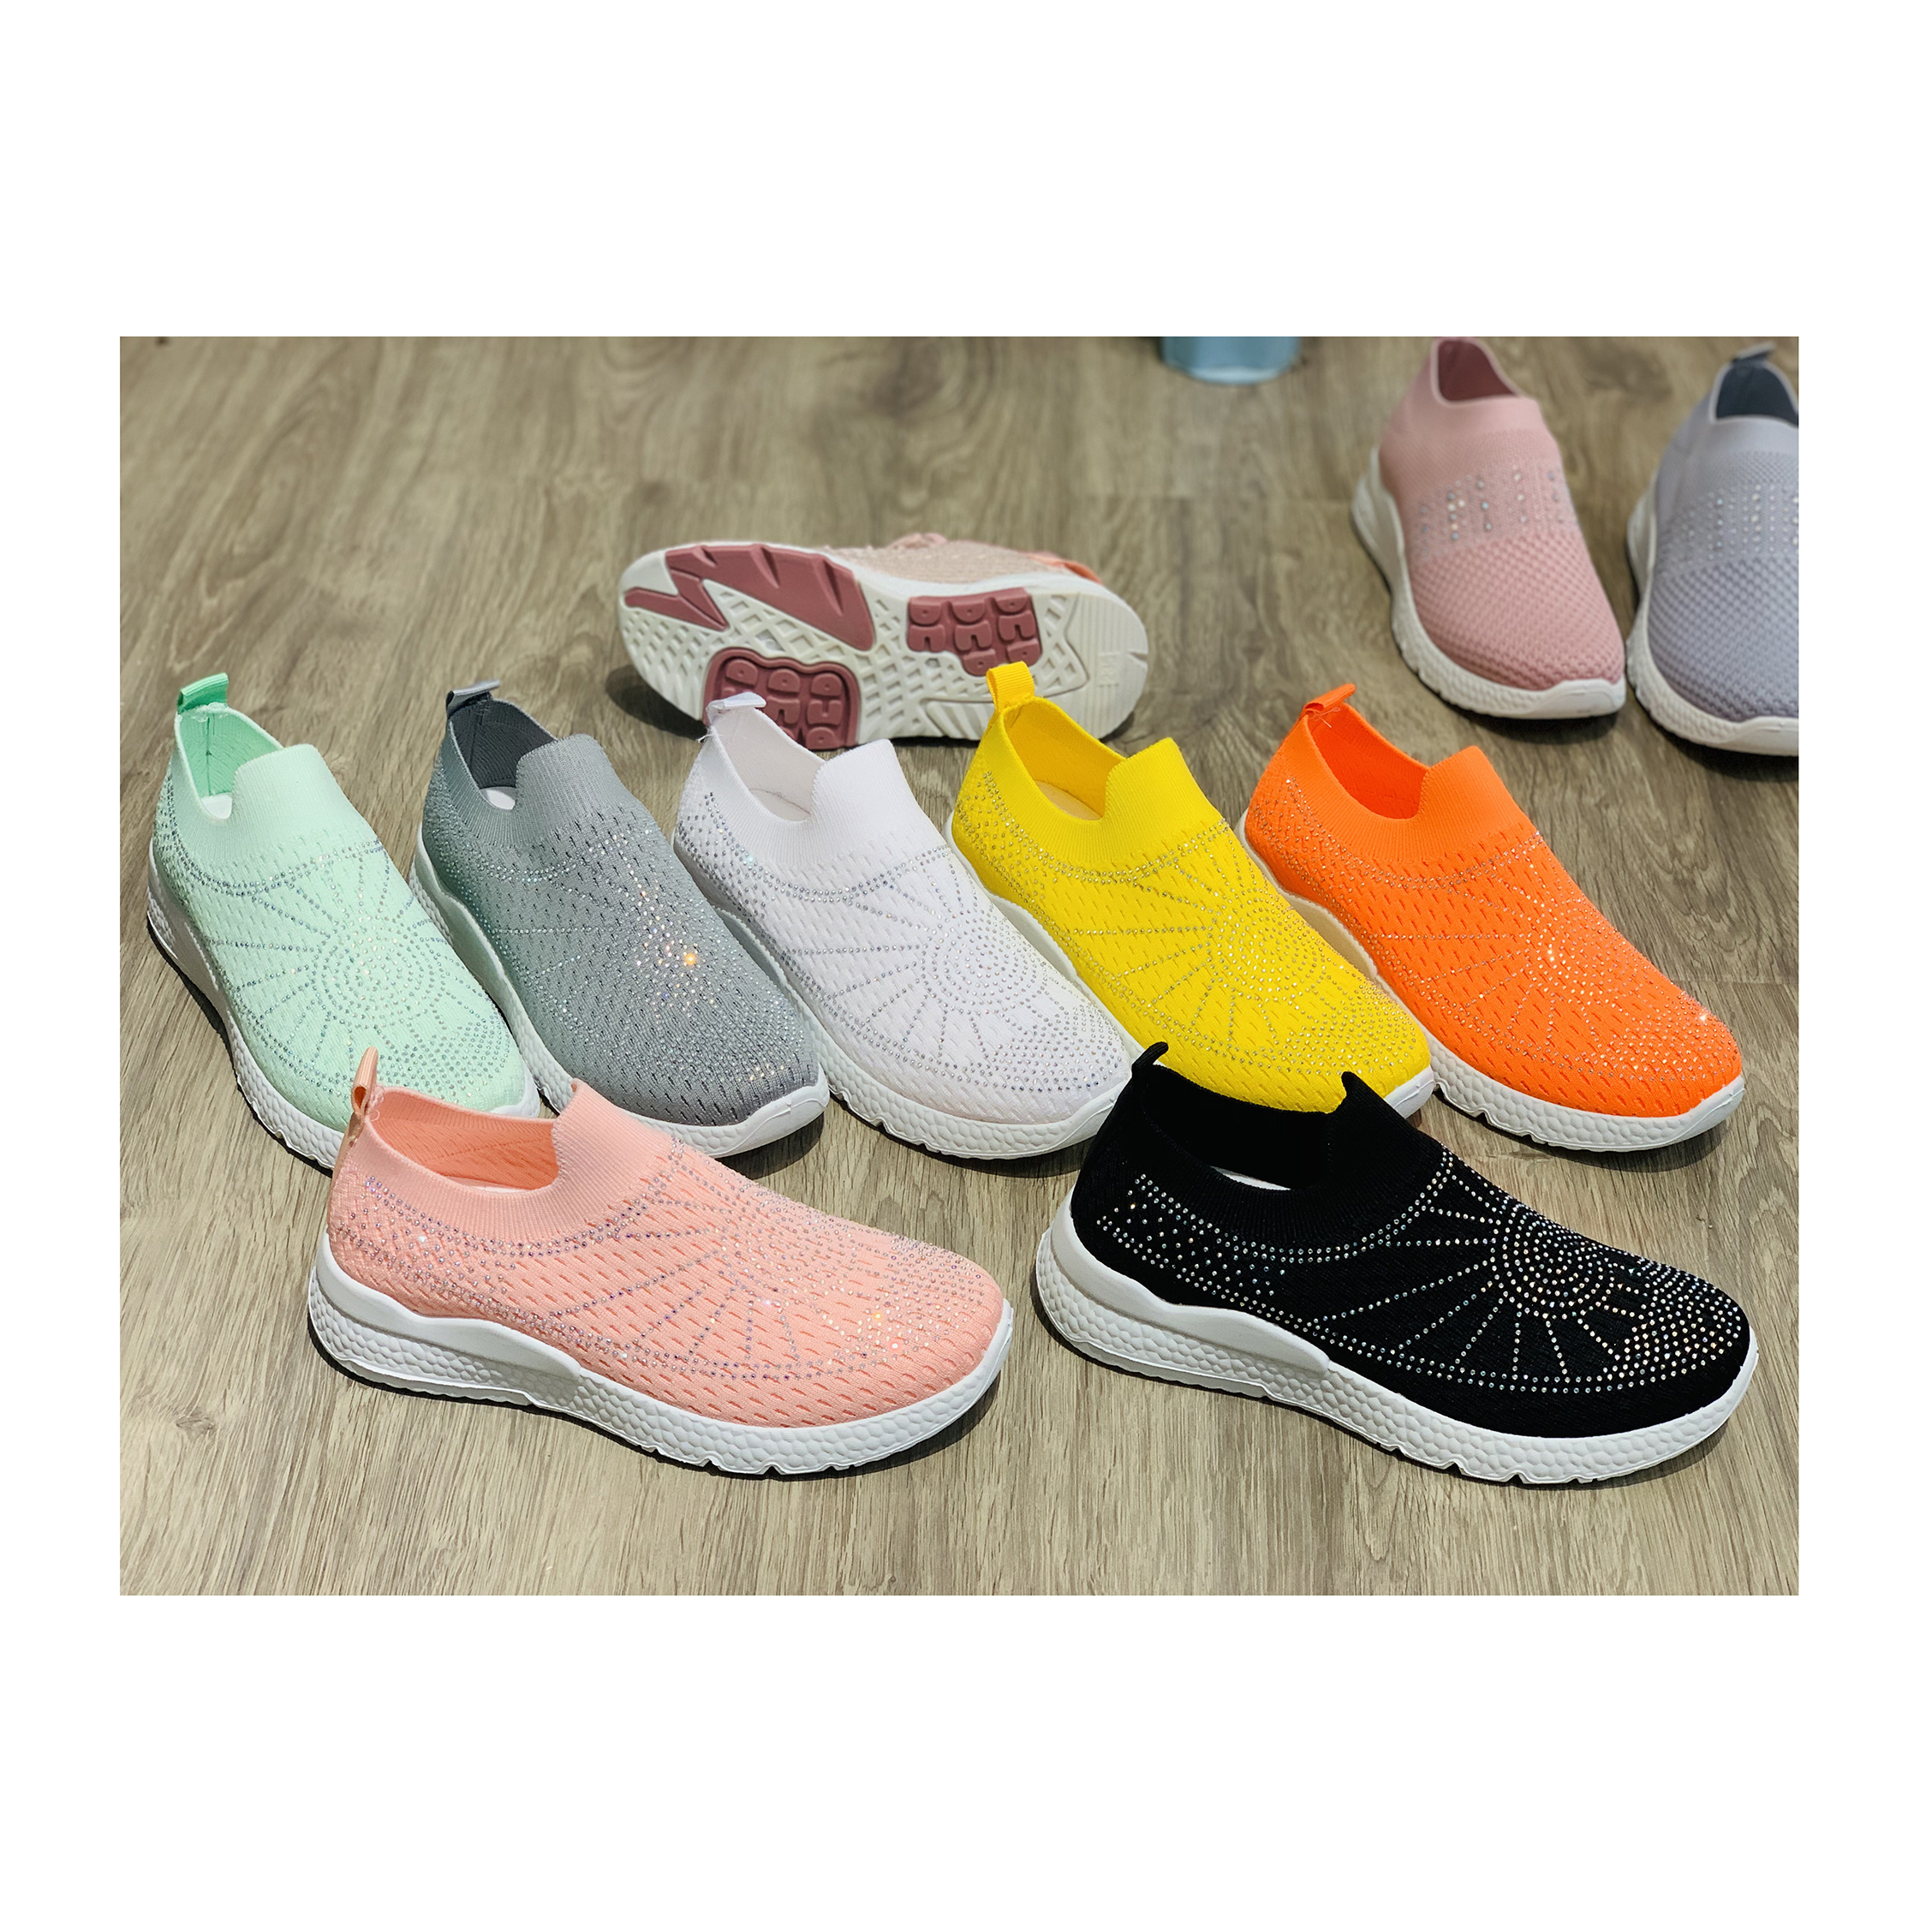 2019 Hot Design Wholesale Clunky Sneaker Men Old School Dad Shoe Fashion Casual Shoe Thick Bottom Height Increasing Shoe